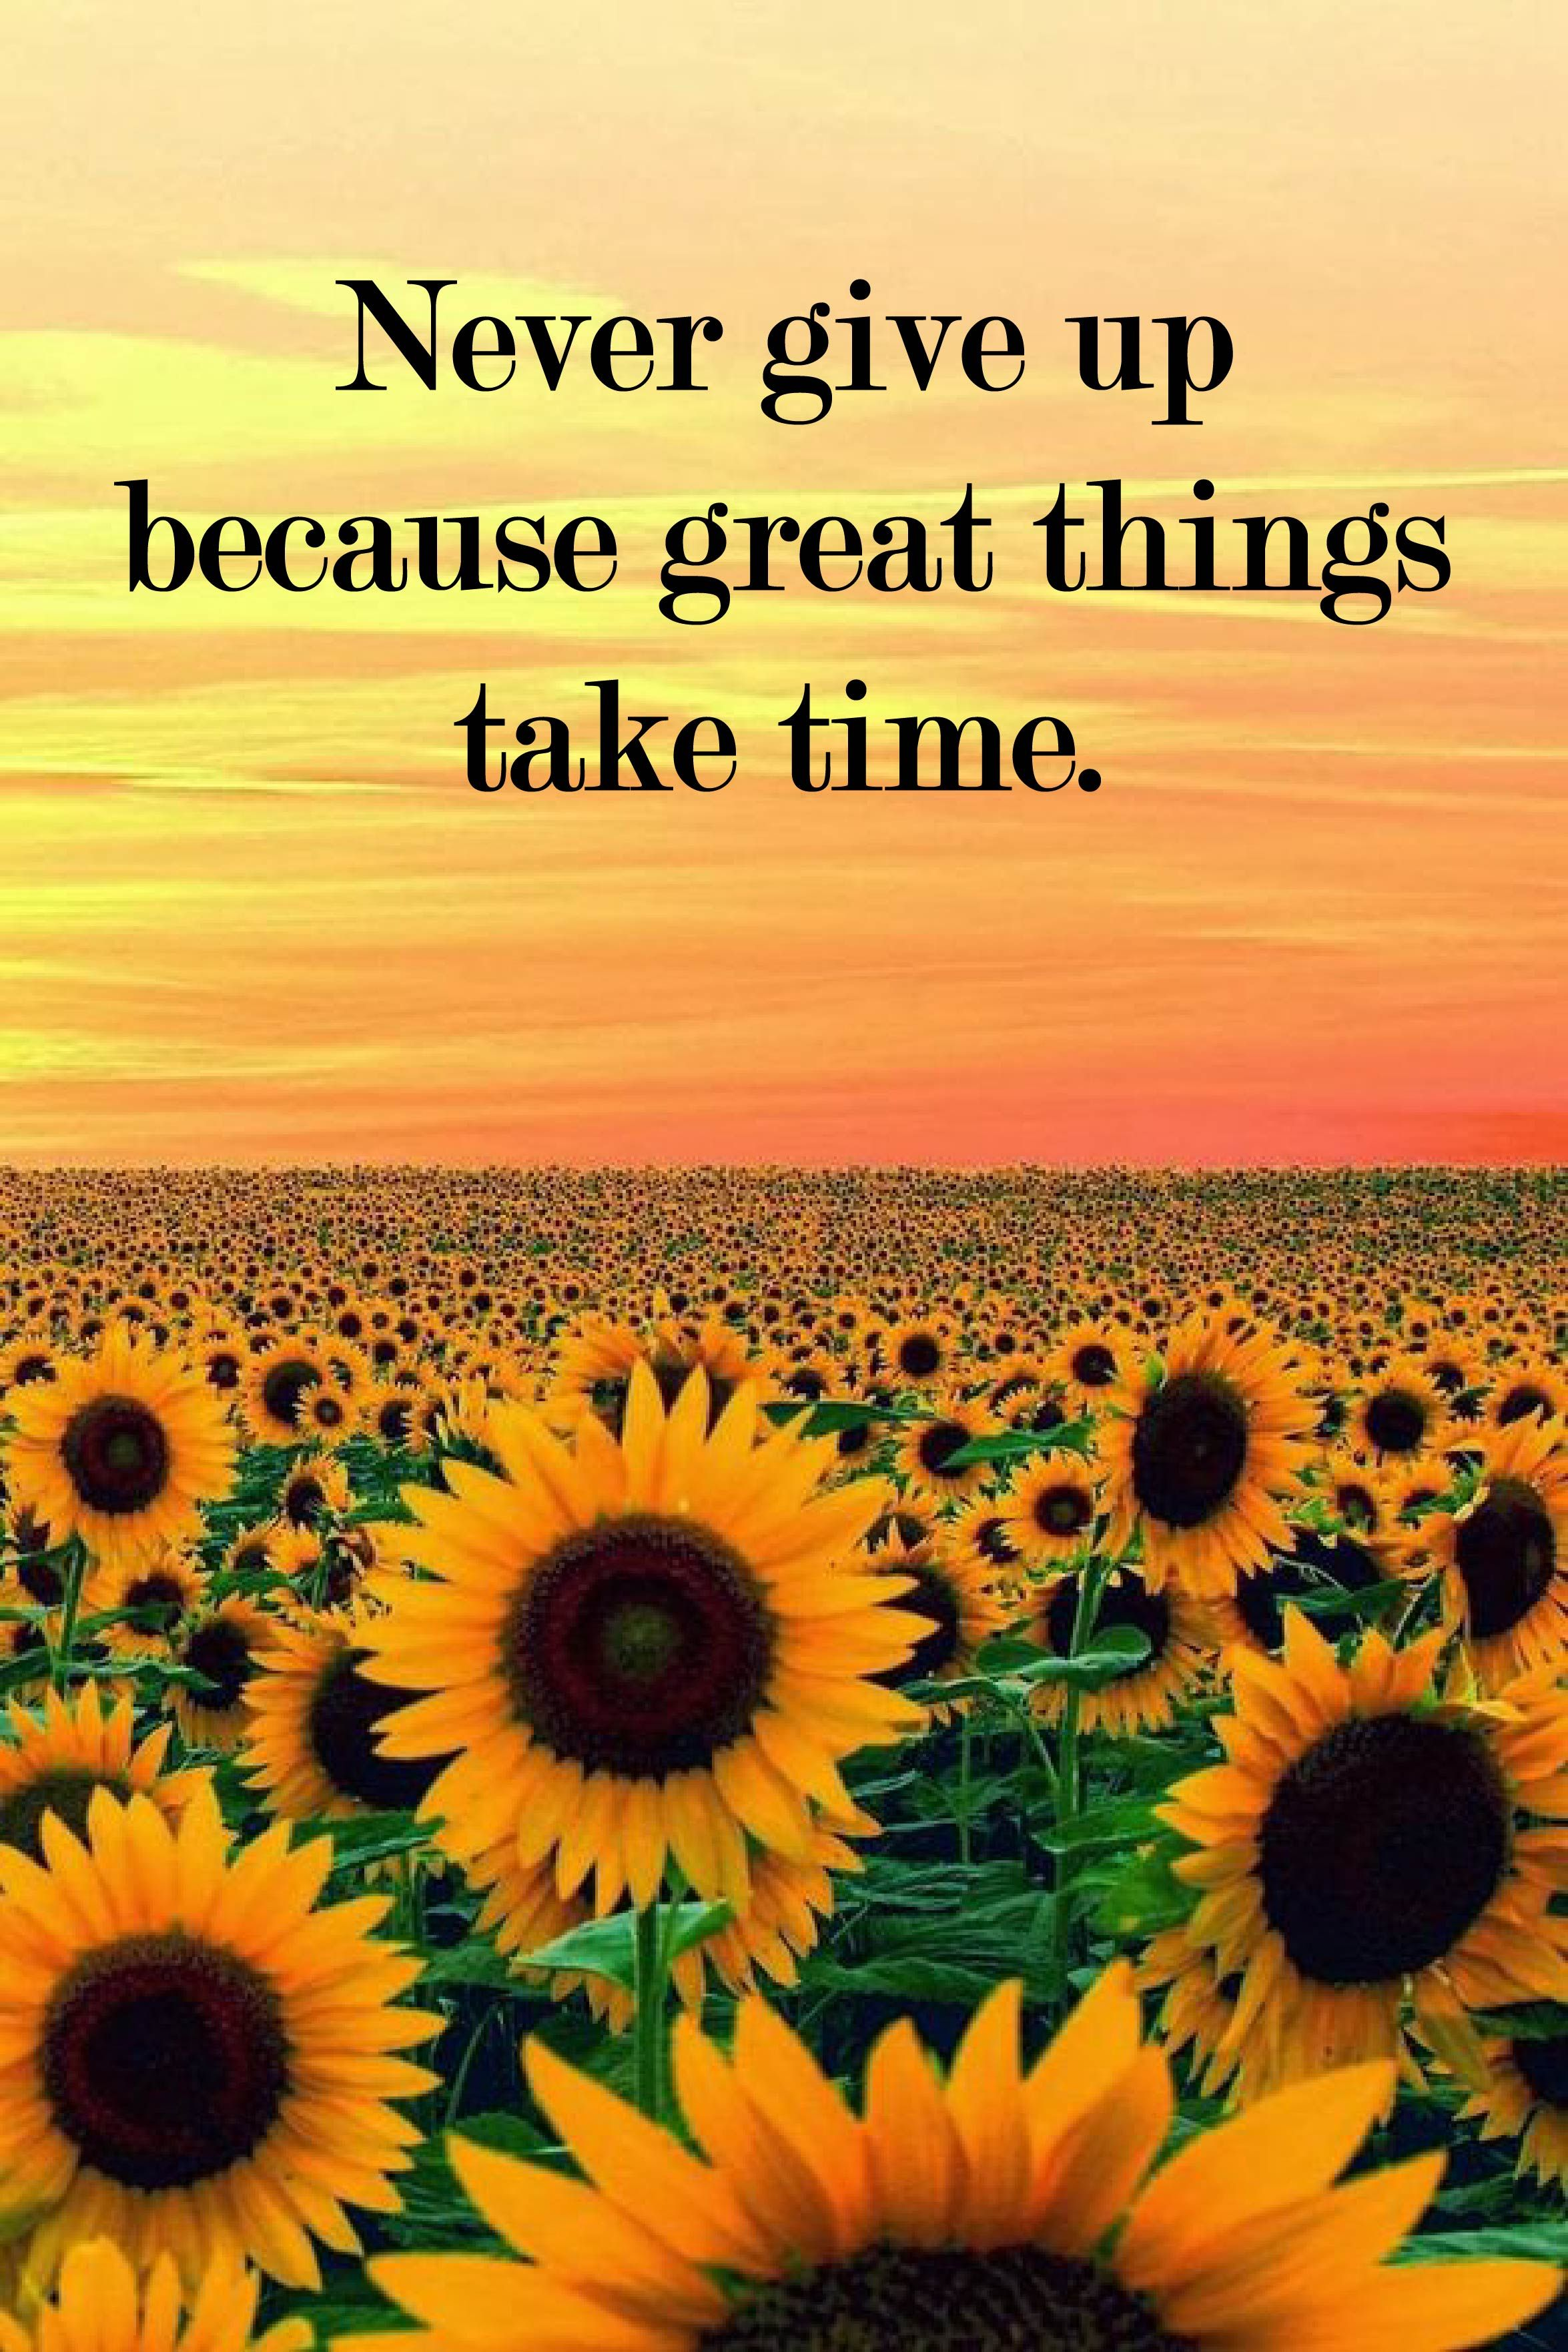 Pin by Seize Positivity on Positivity   Sunflower quotes ...